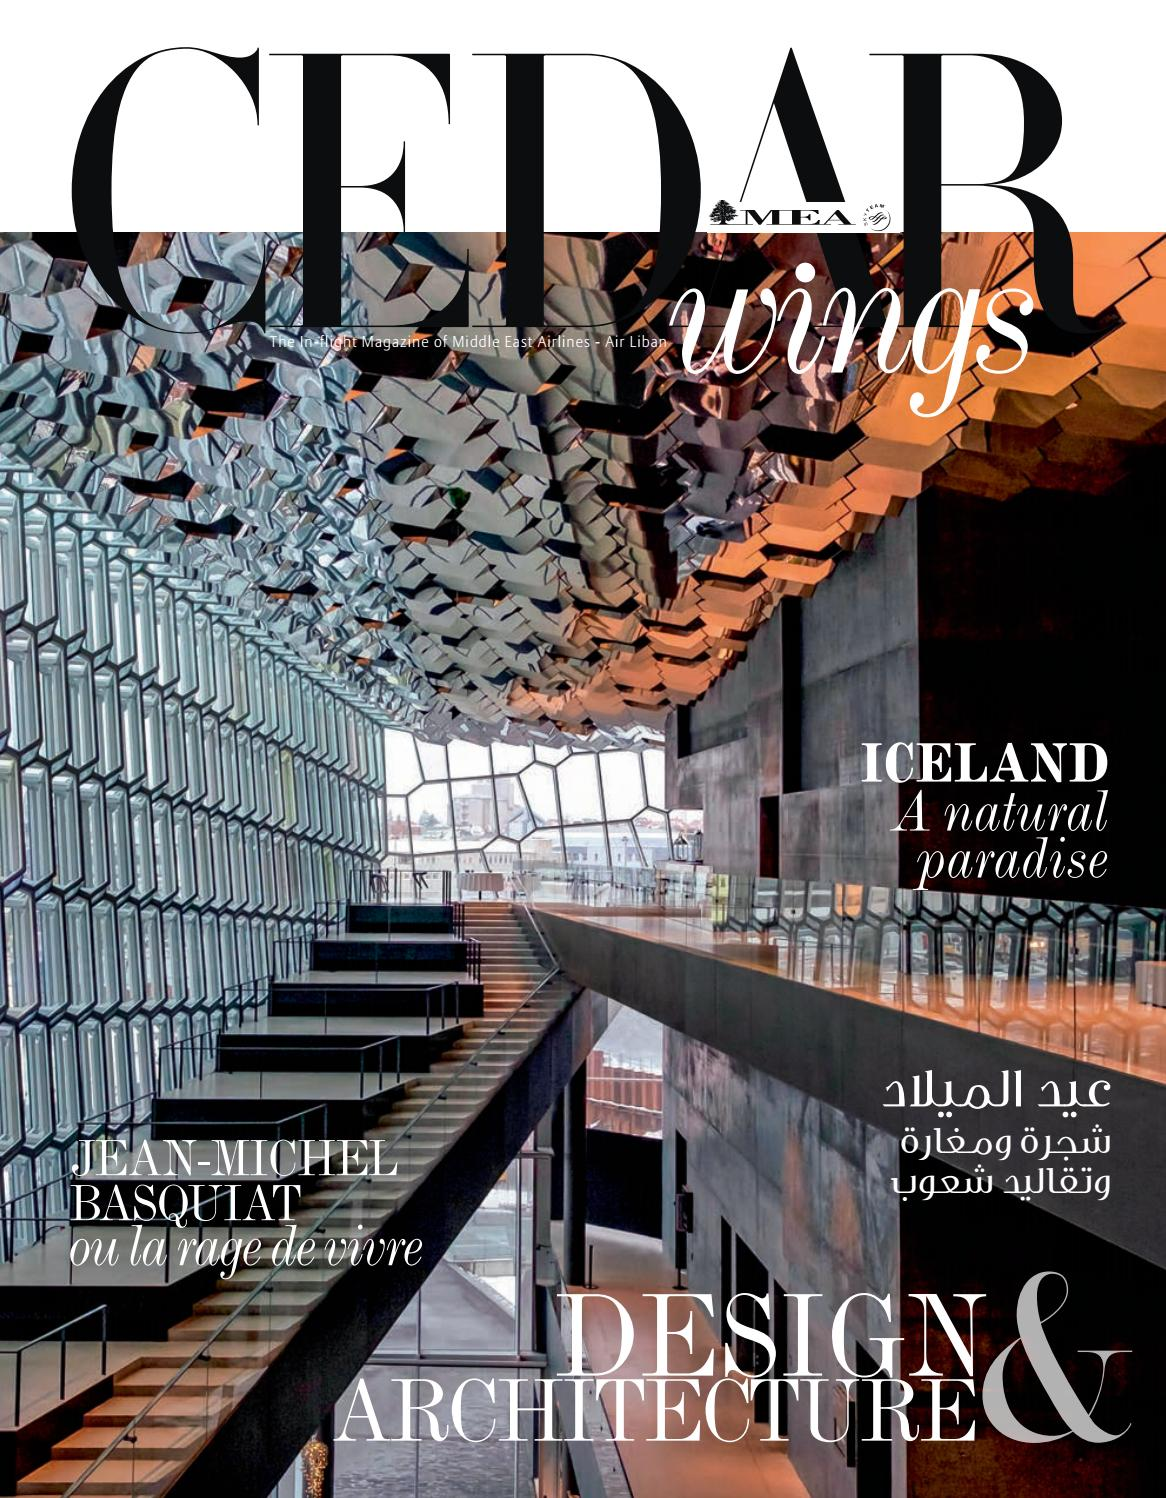 Architecture Intérieure Synonyme Cedar Wings Magazine Design Architecture December 2018 January 2019